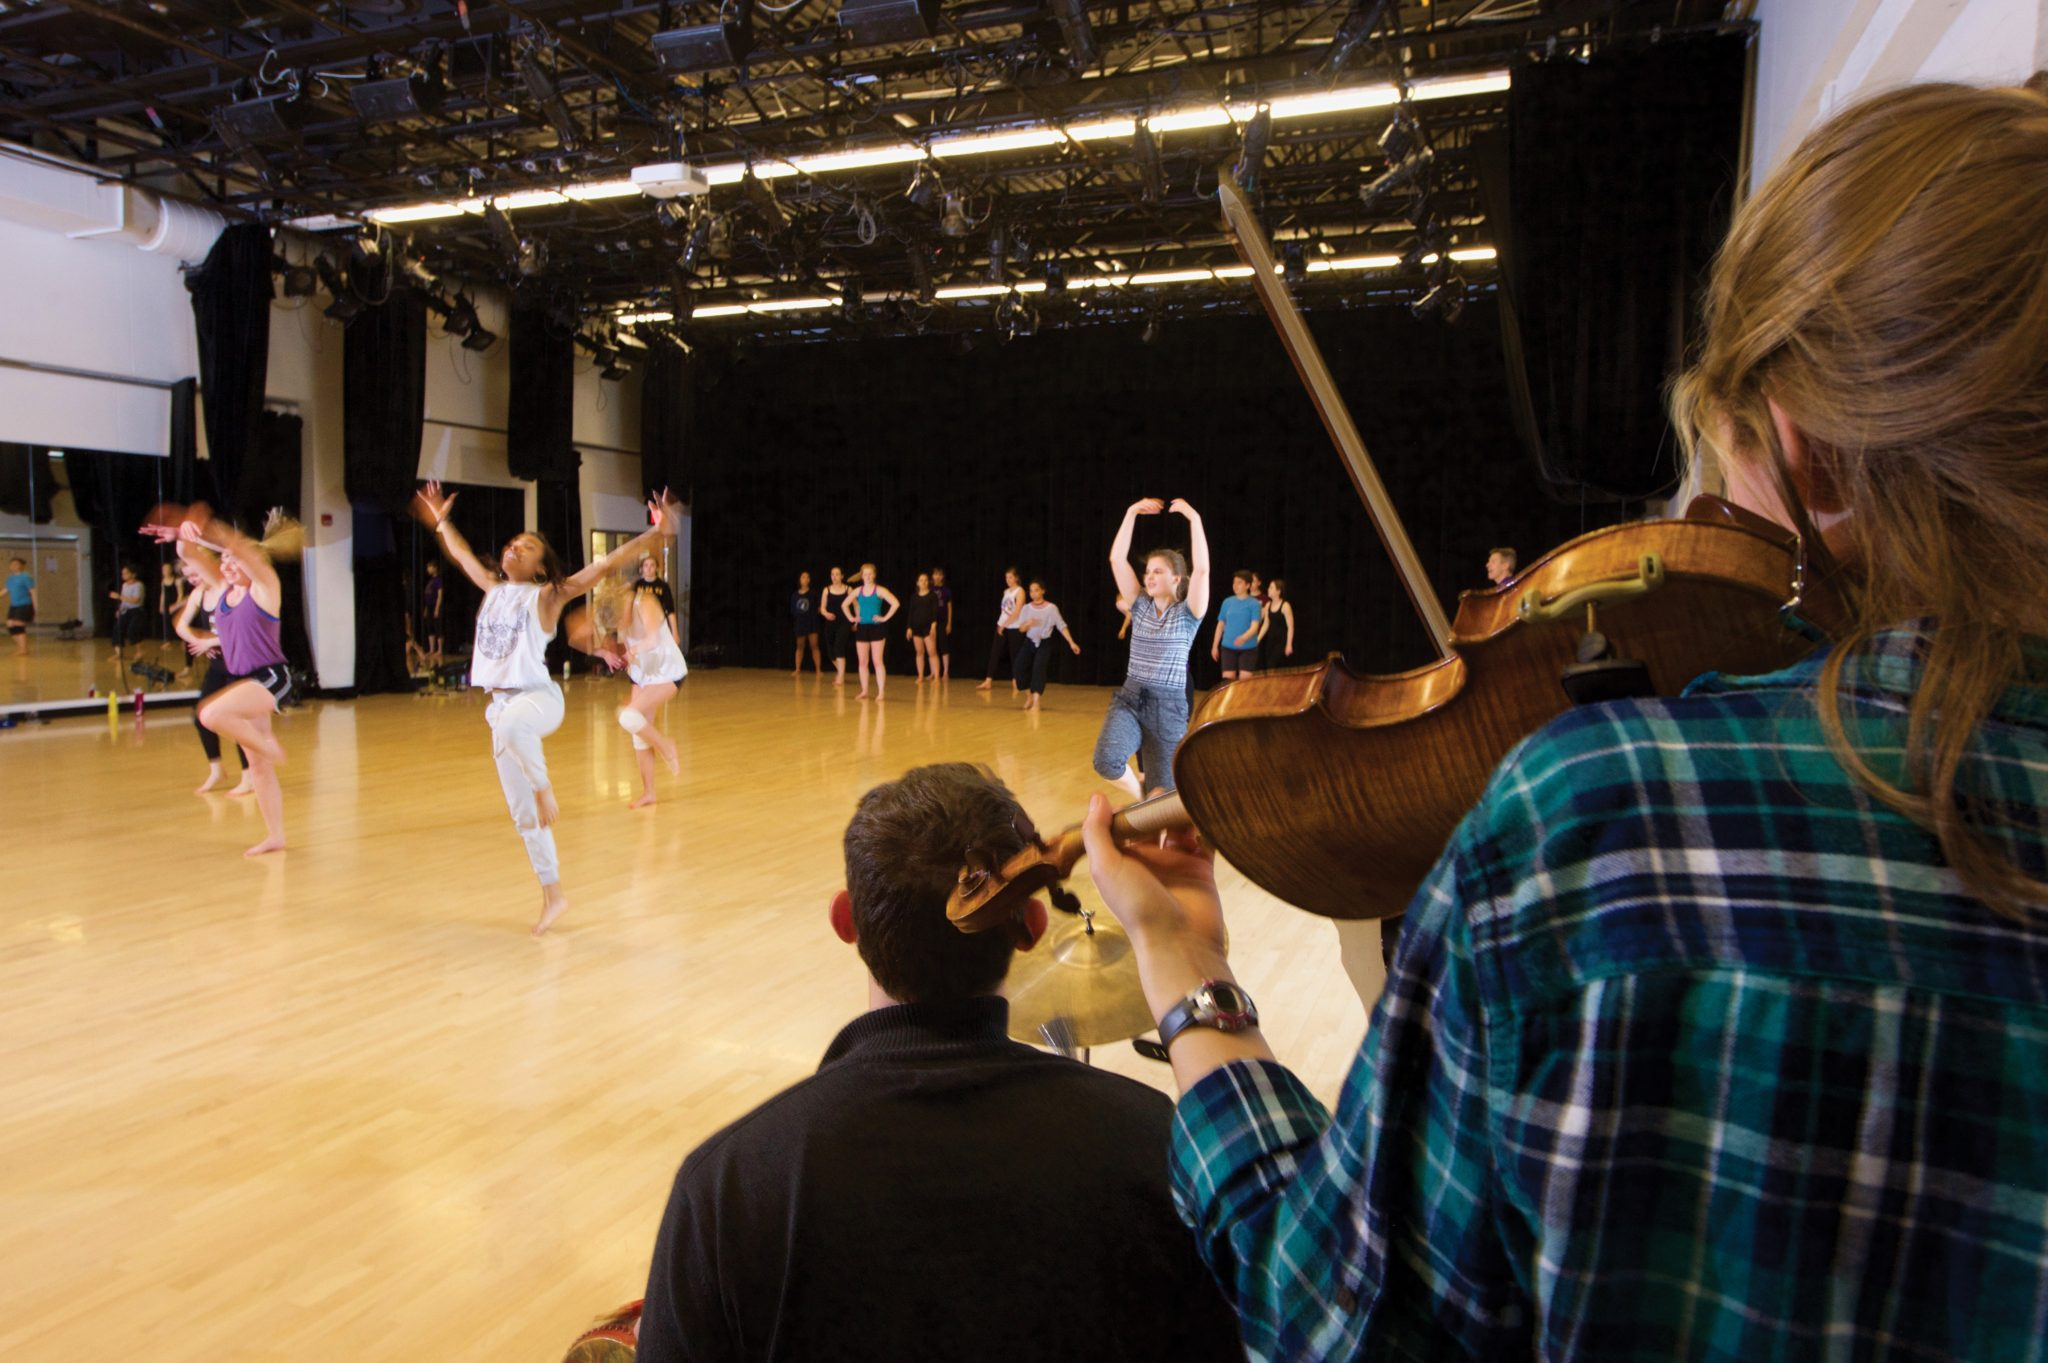 Musicians play during a dance rehearsal.